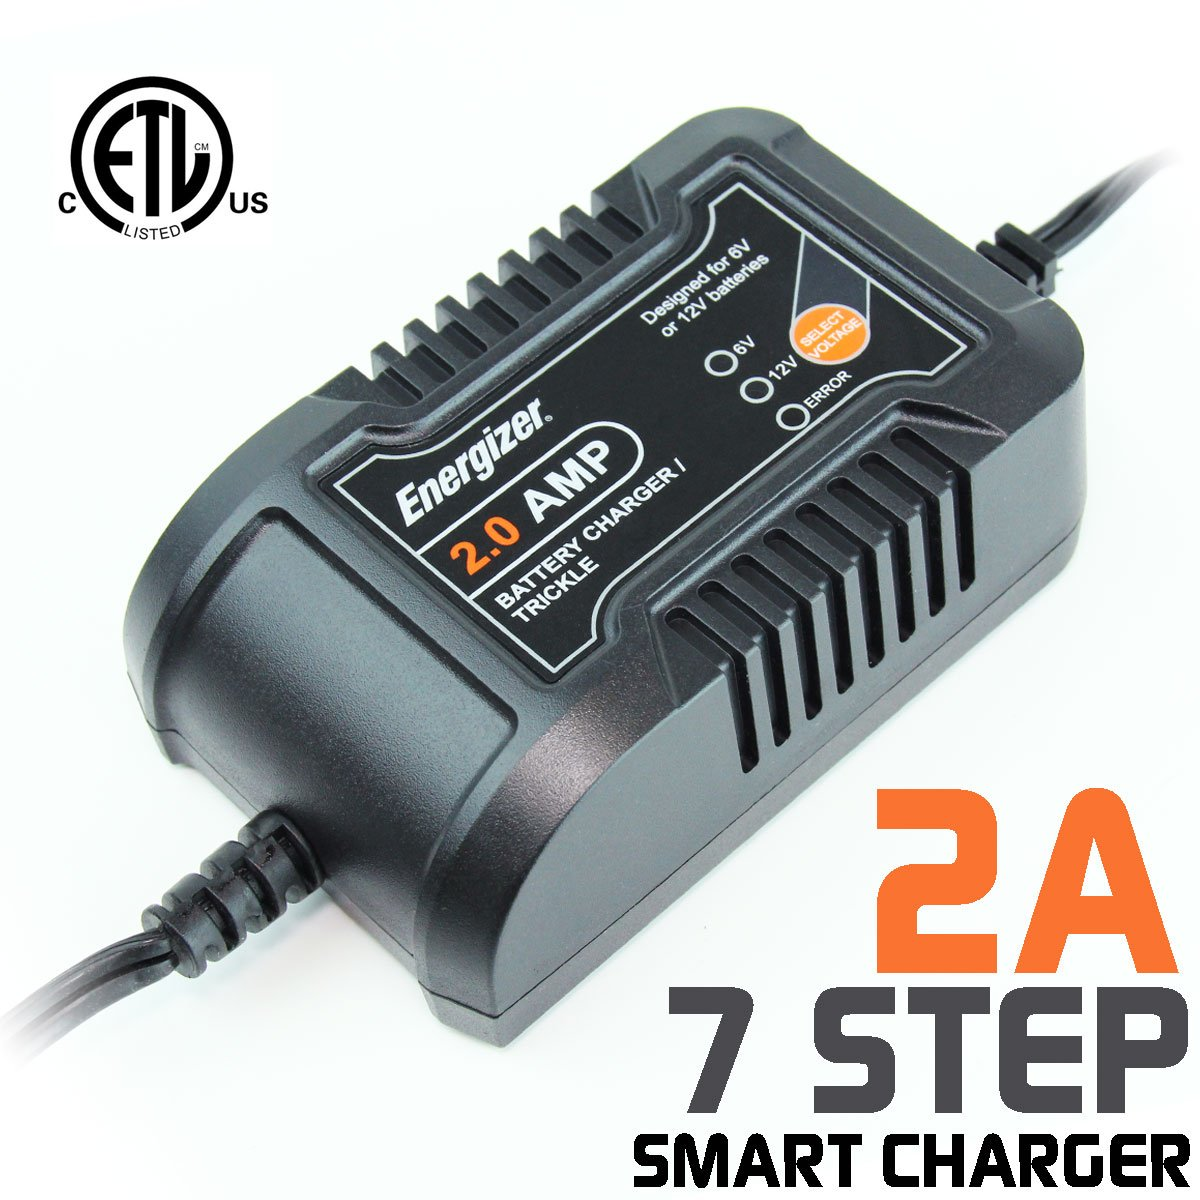 Energizer ENC2A 2 Amp Battery Charger + Maintainer 6/12V - 7 Step Smart Charging technology that will improve your batterys life cycle for Car, RV or Boat